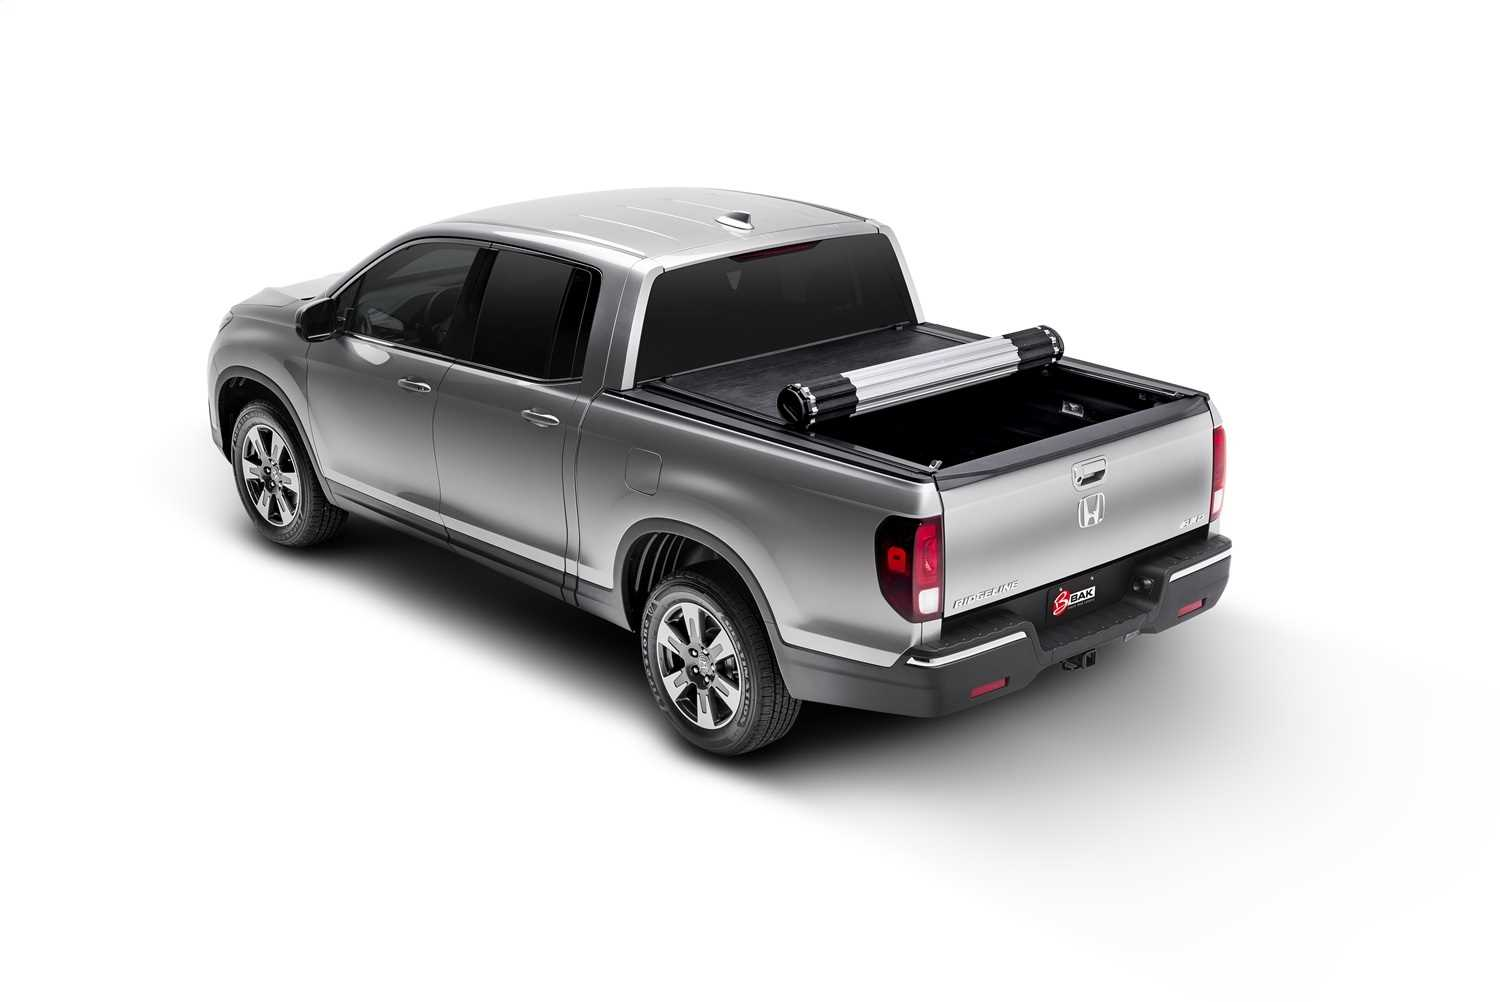 39602 Bak Industries Revolver X2 Hard Rolling Truck Bed Cover